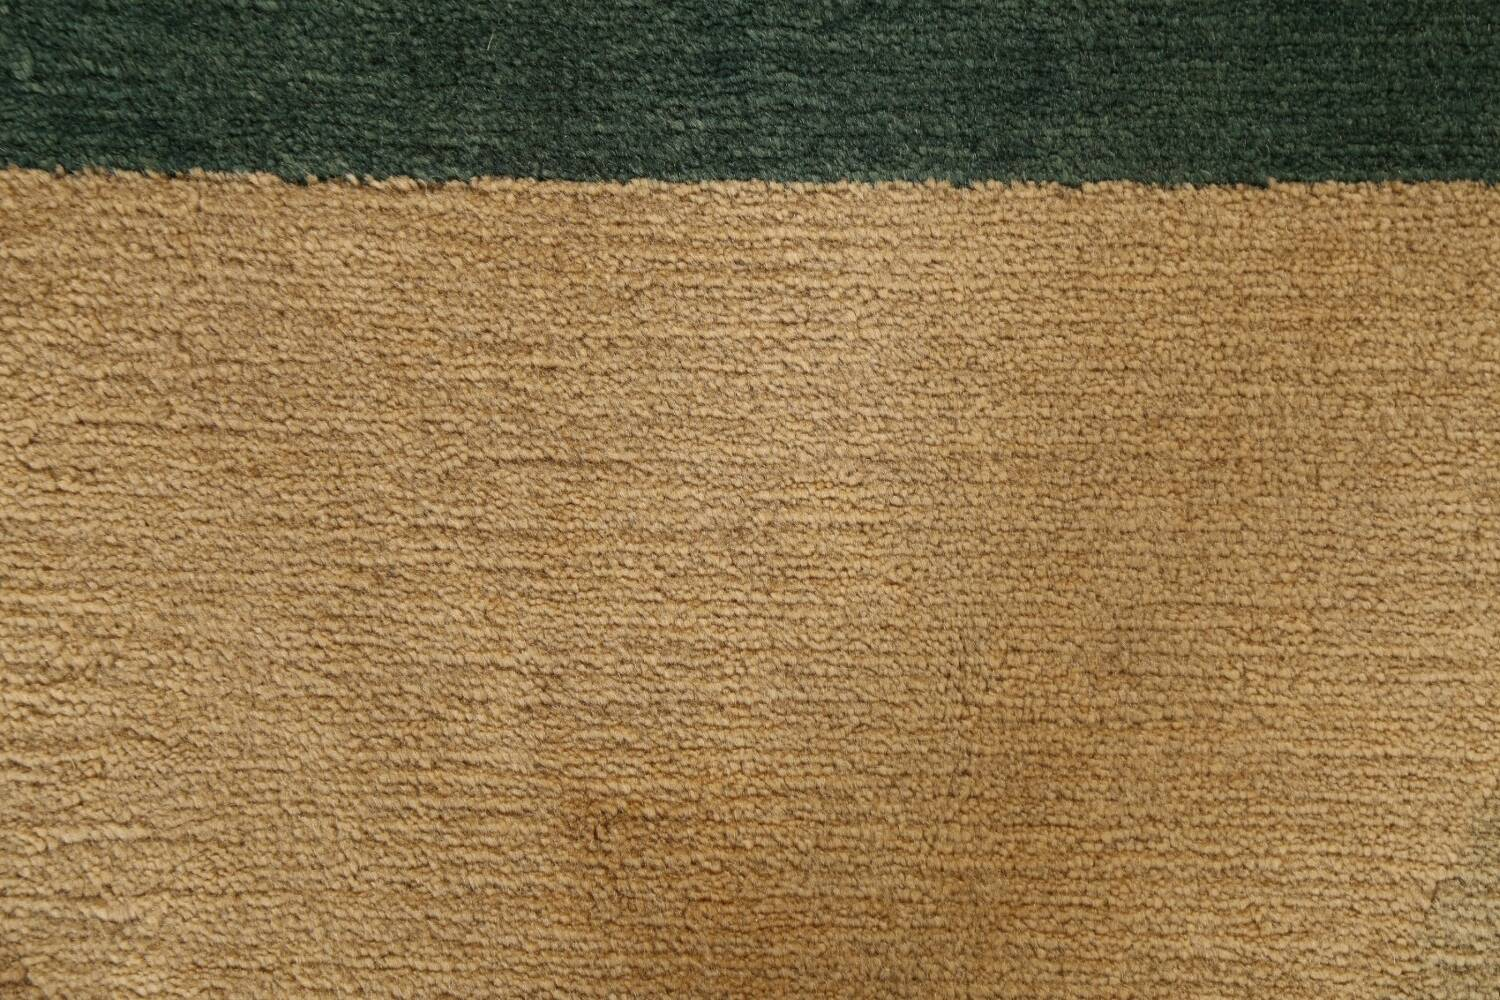 Vegetable Dye Nepalese Contemporary Area Rug 6x9 image 11